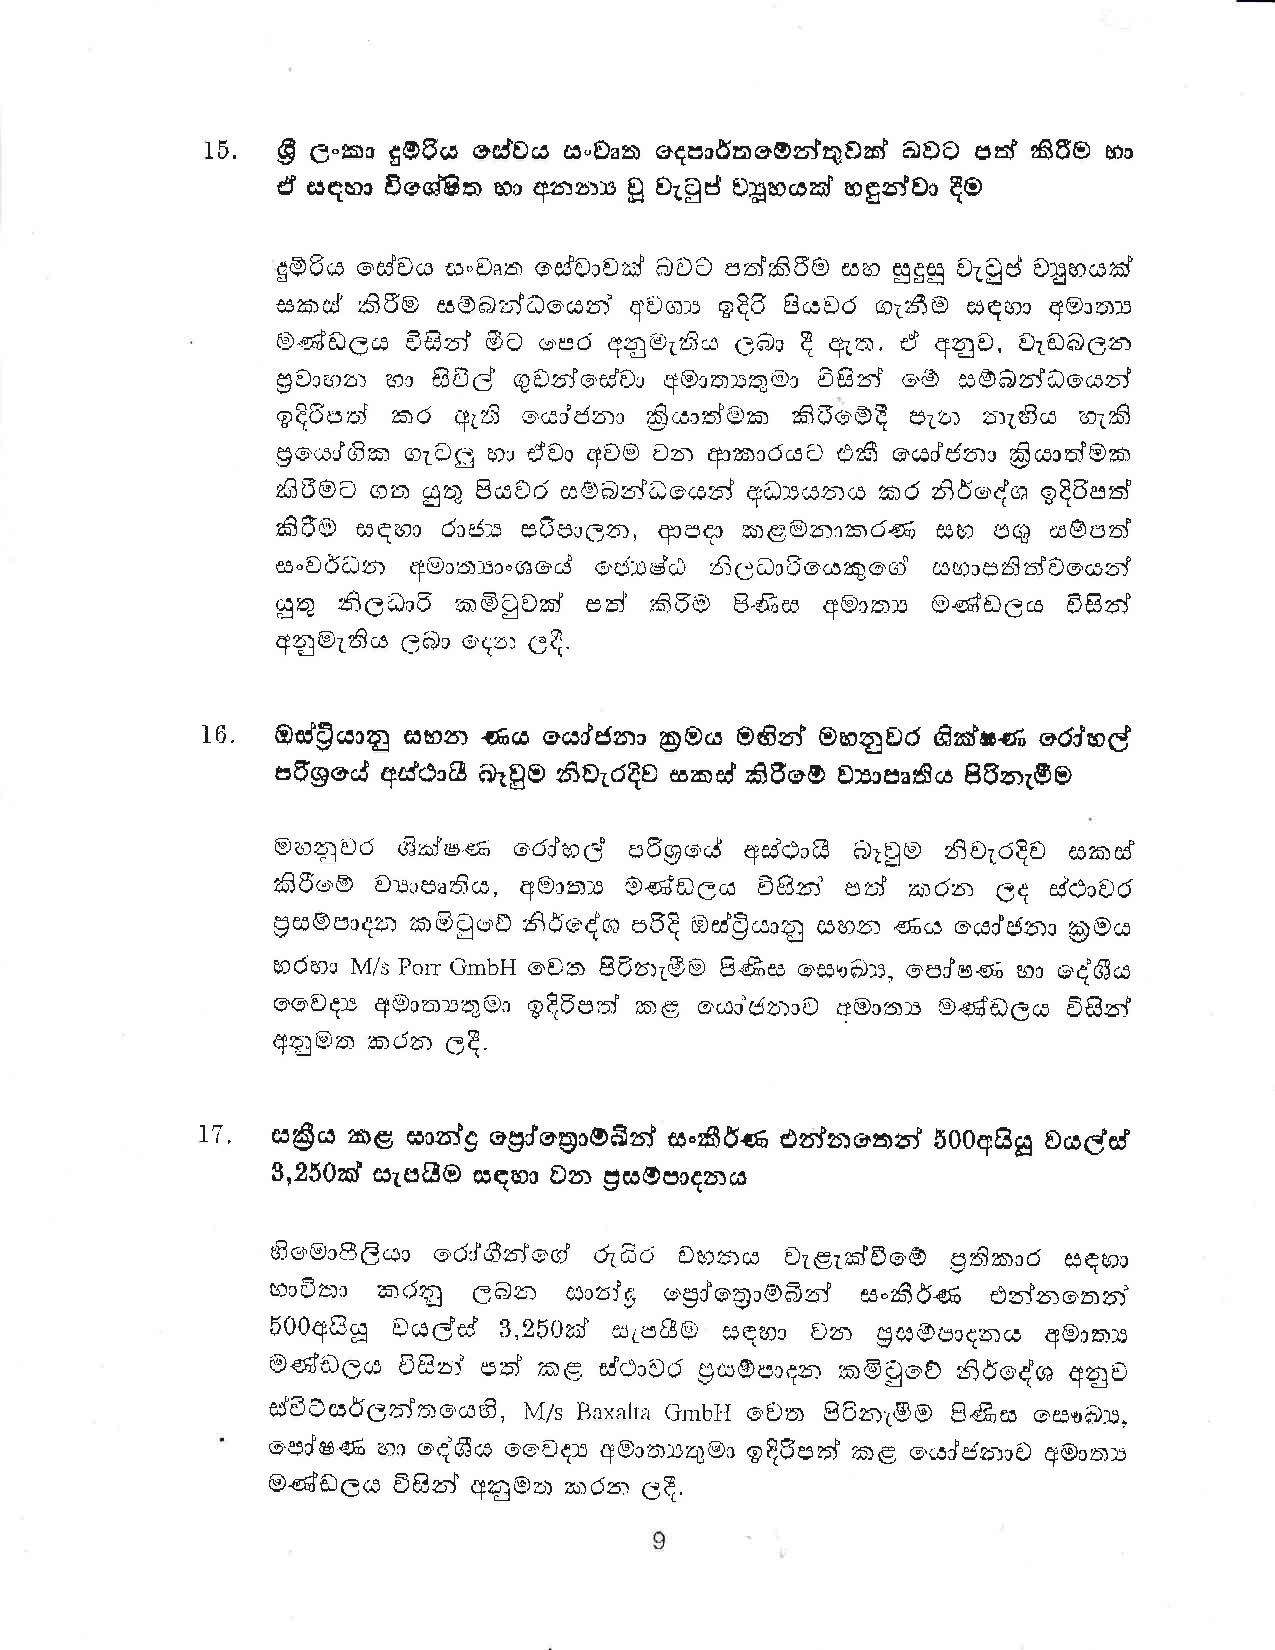 Cabinet Decision on 15.10.2019 page 009